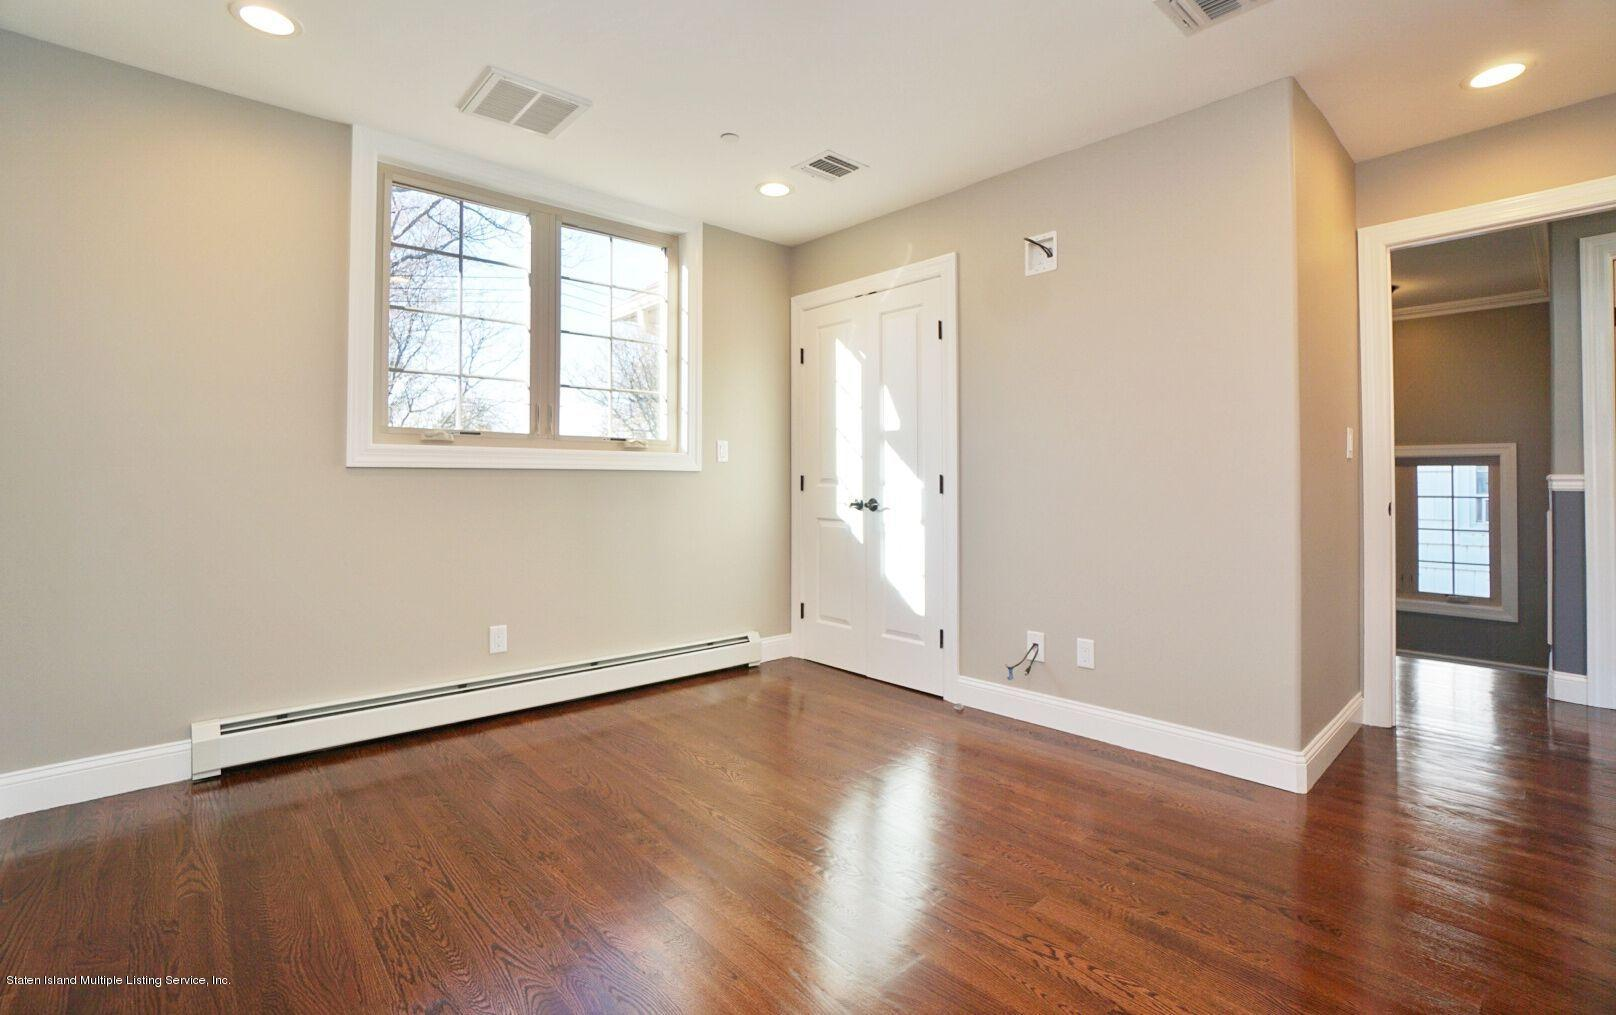 Single Family - Detached 165 Woolley Avenue  Staten Island, NY 10314, MLS-1128875-43